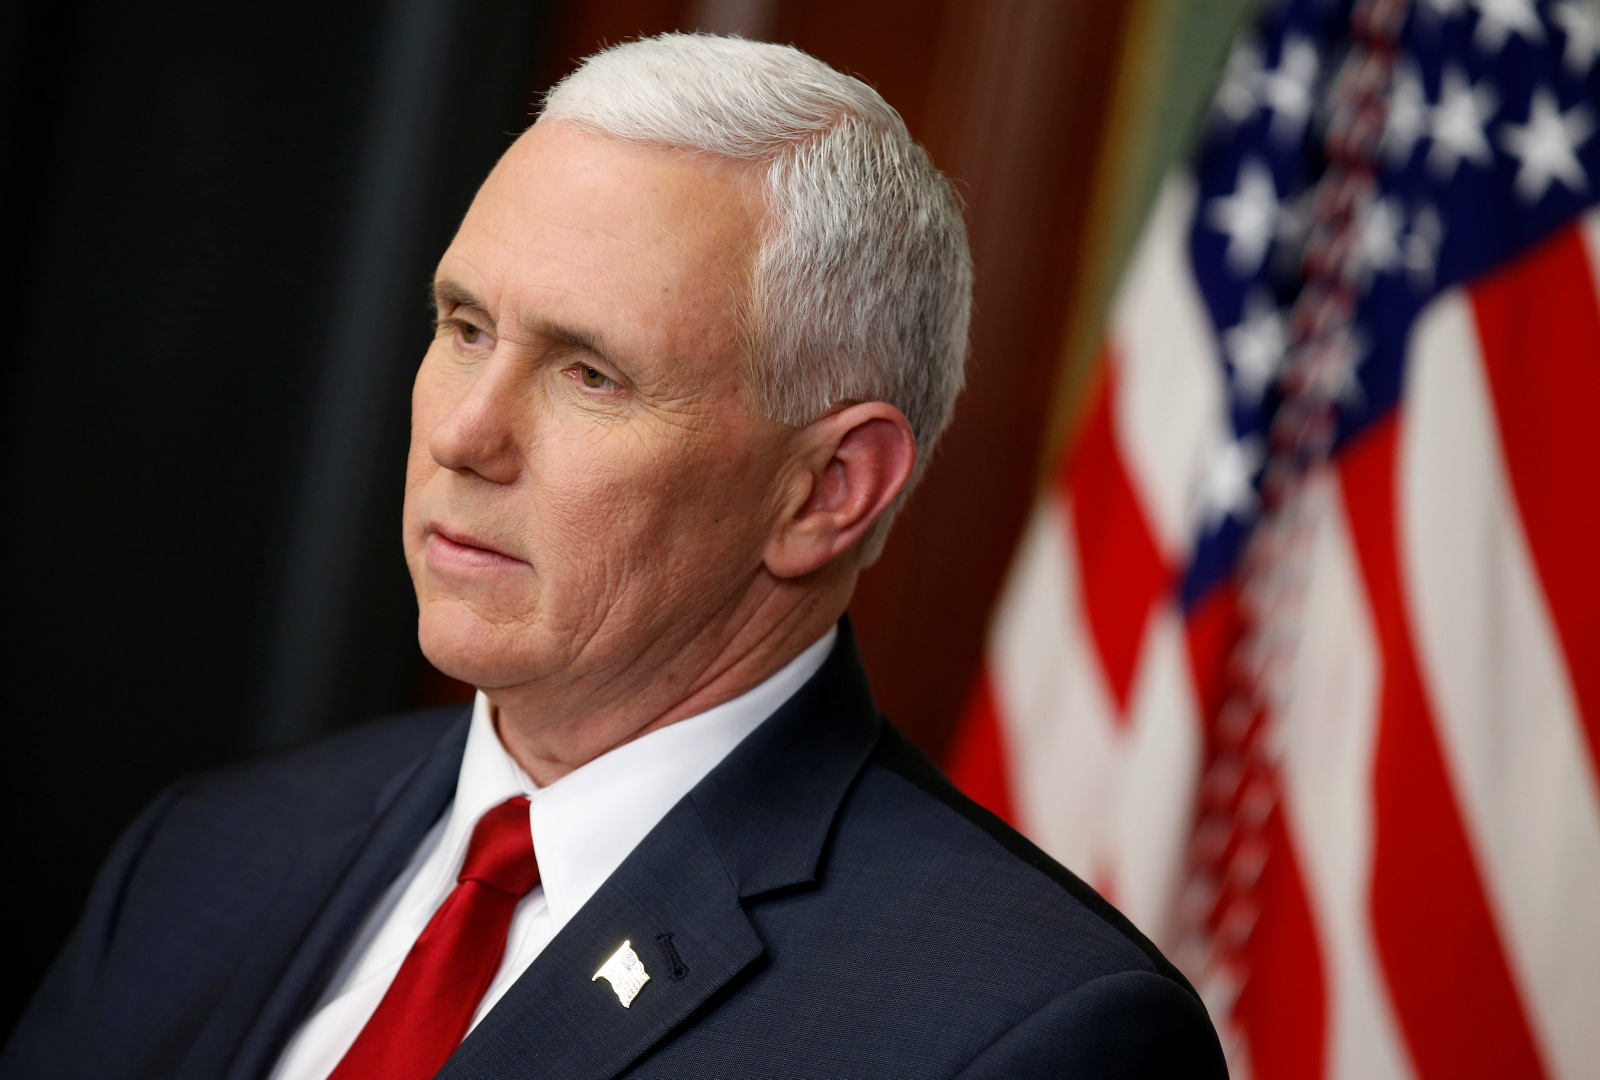 Vice President Mike Pence Used Private Email As Governor